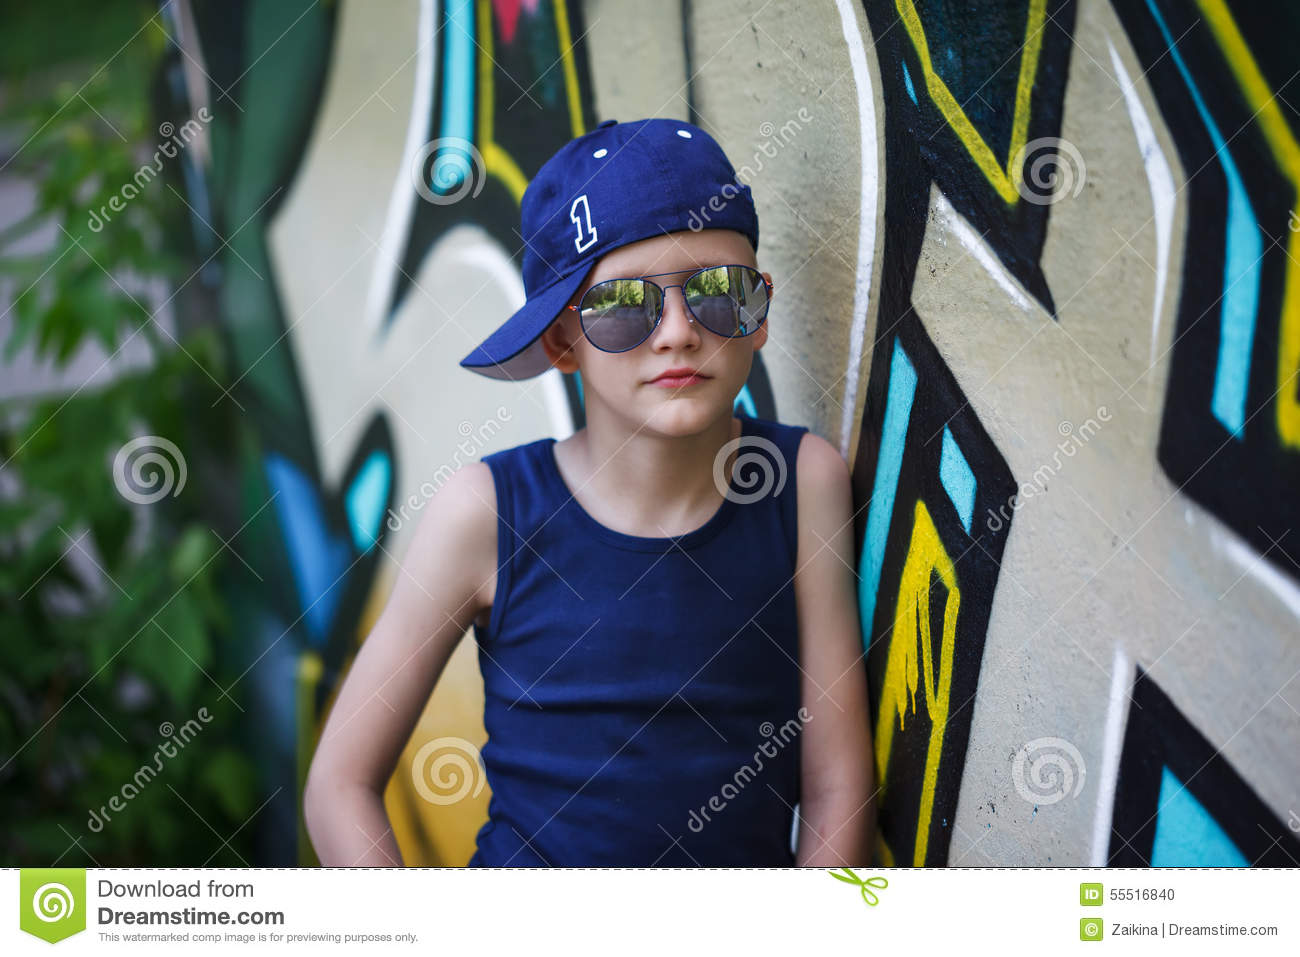 4cfa83a14d78 Portrait of Fashionable little boy in sunglasses and cap.Graffiti  background. Summertime. Outdoors. More similar stock images